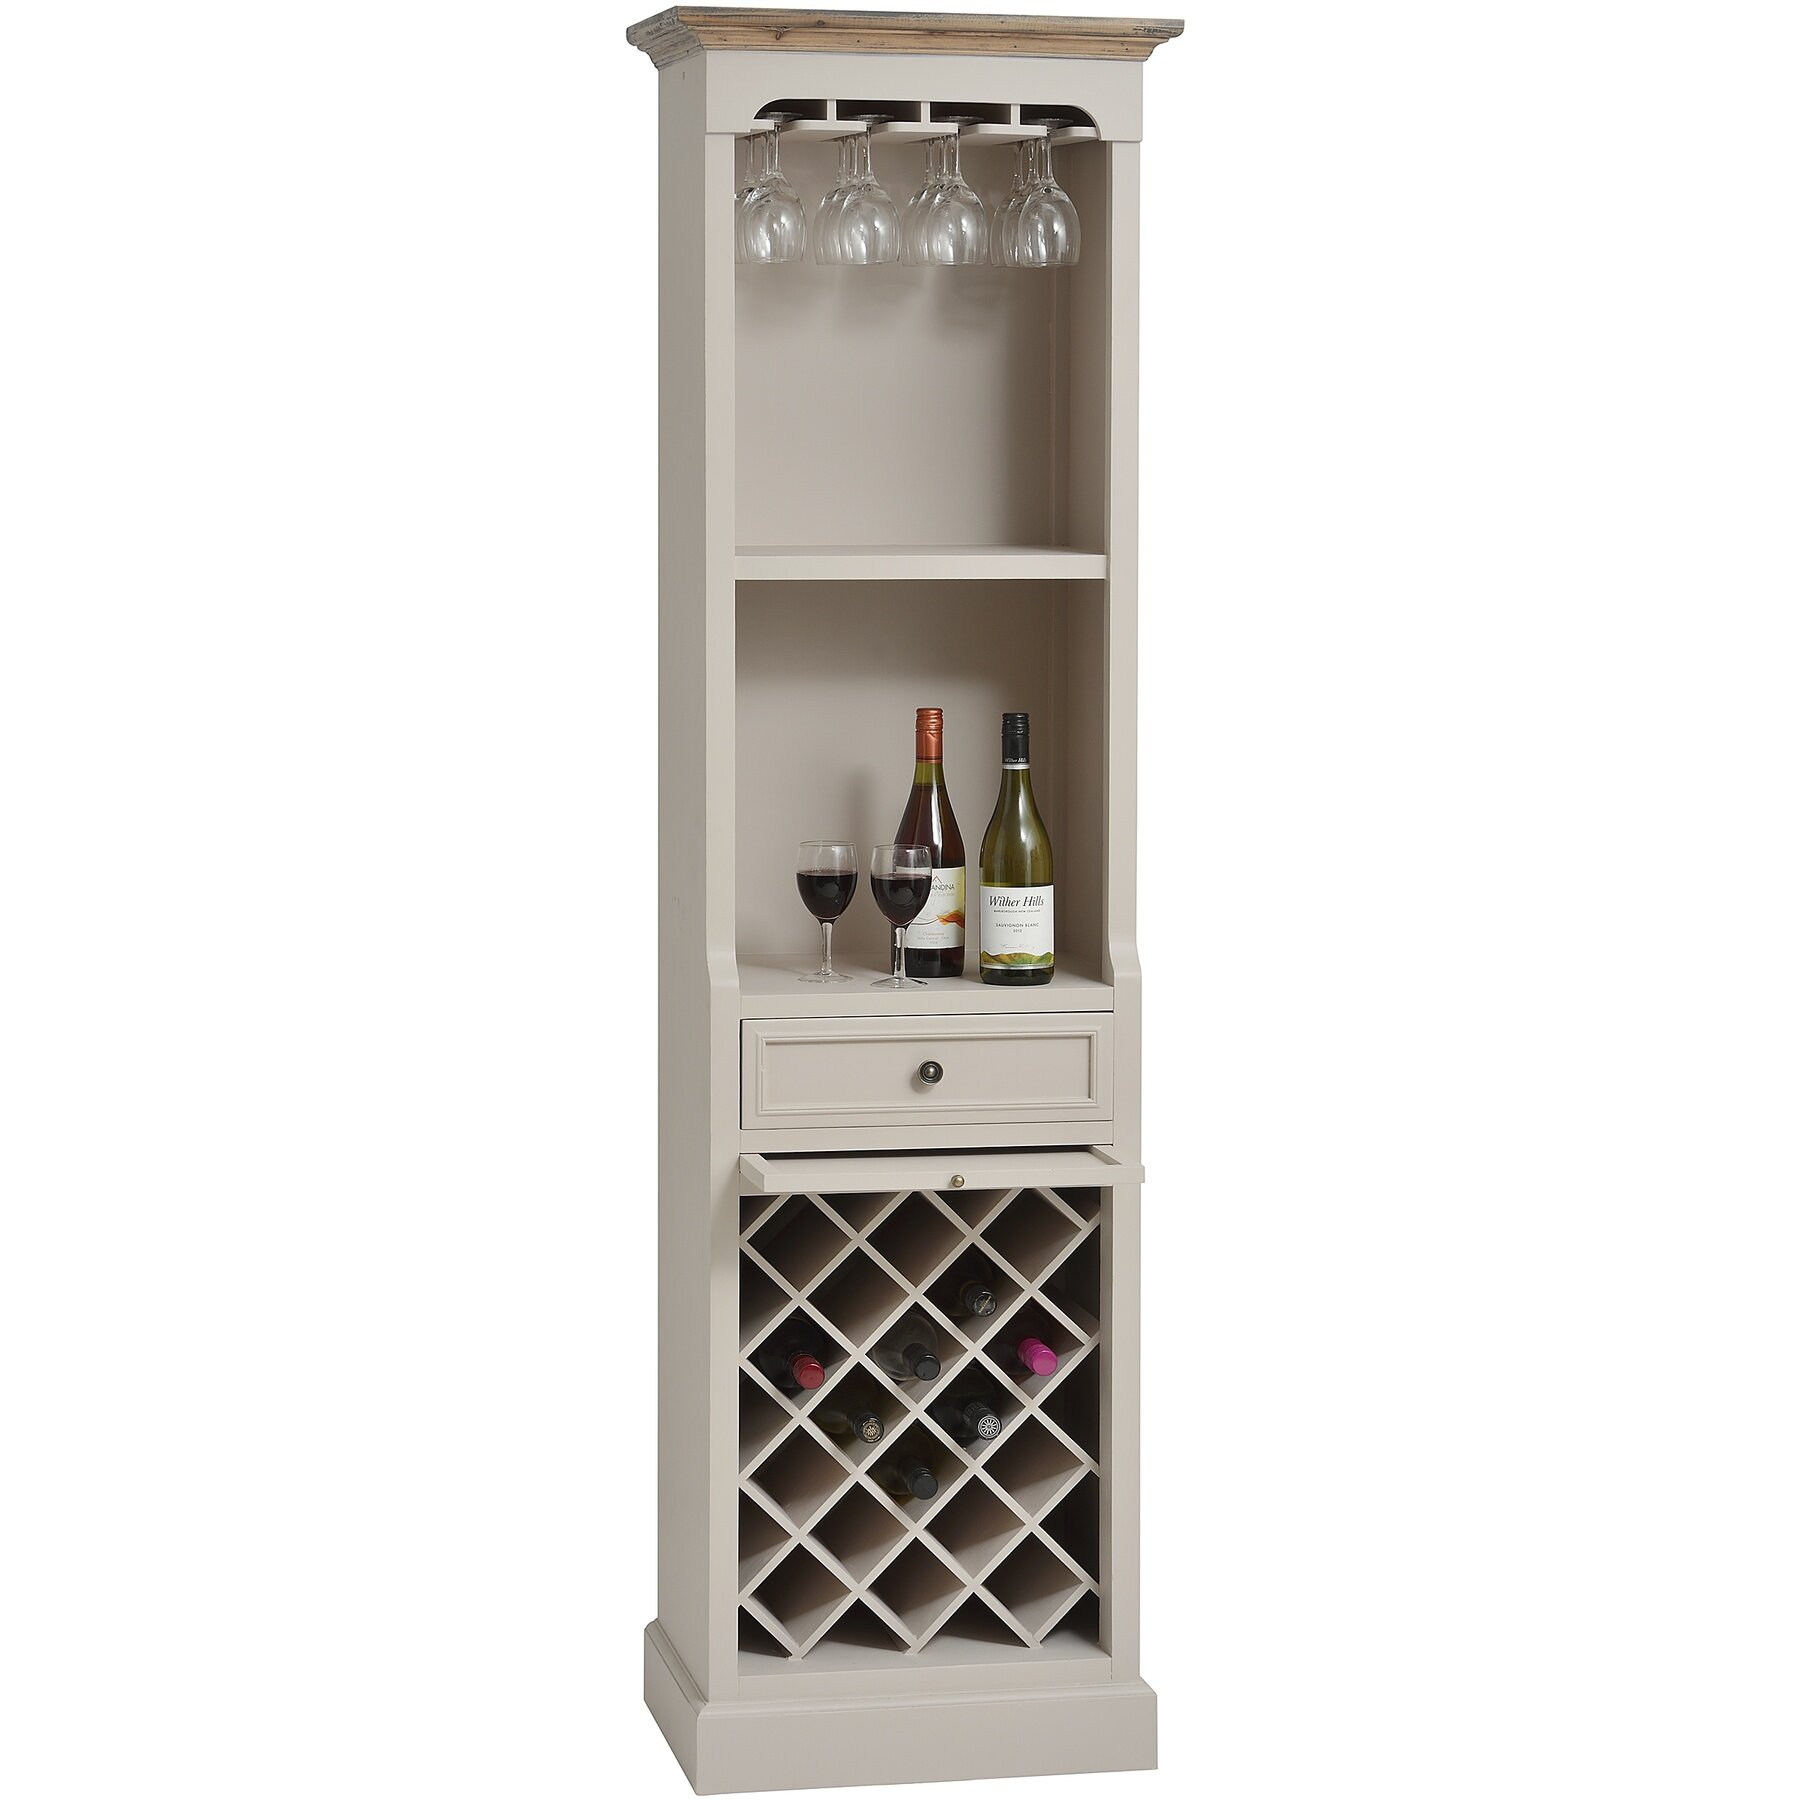 Floor Wine Rack Of Hill Interiors Studley 12 Bottle Floor Wine Rack Wayfair Uk